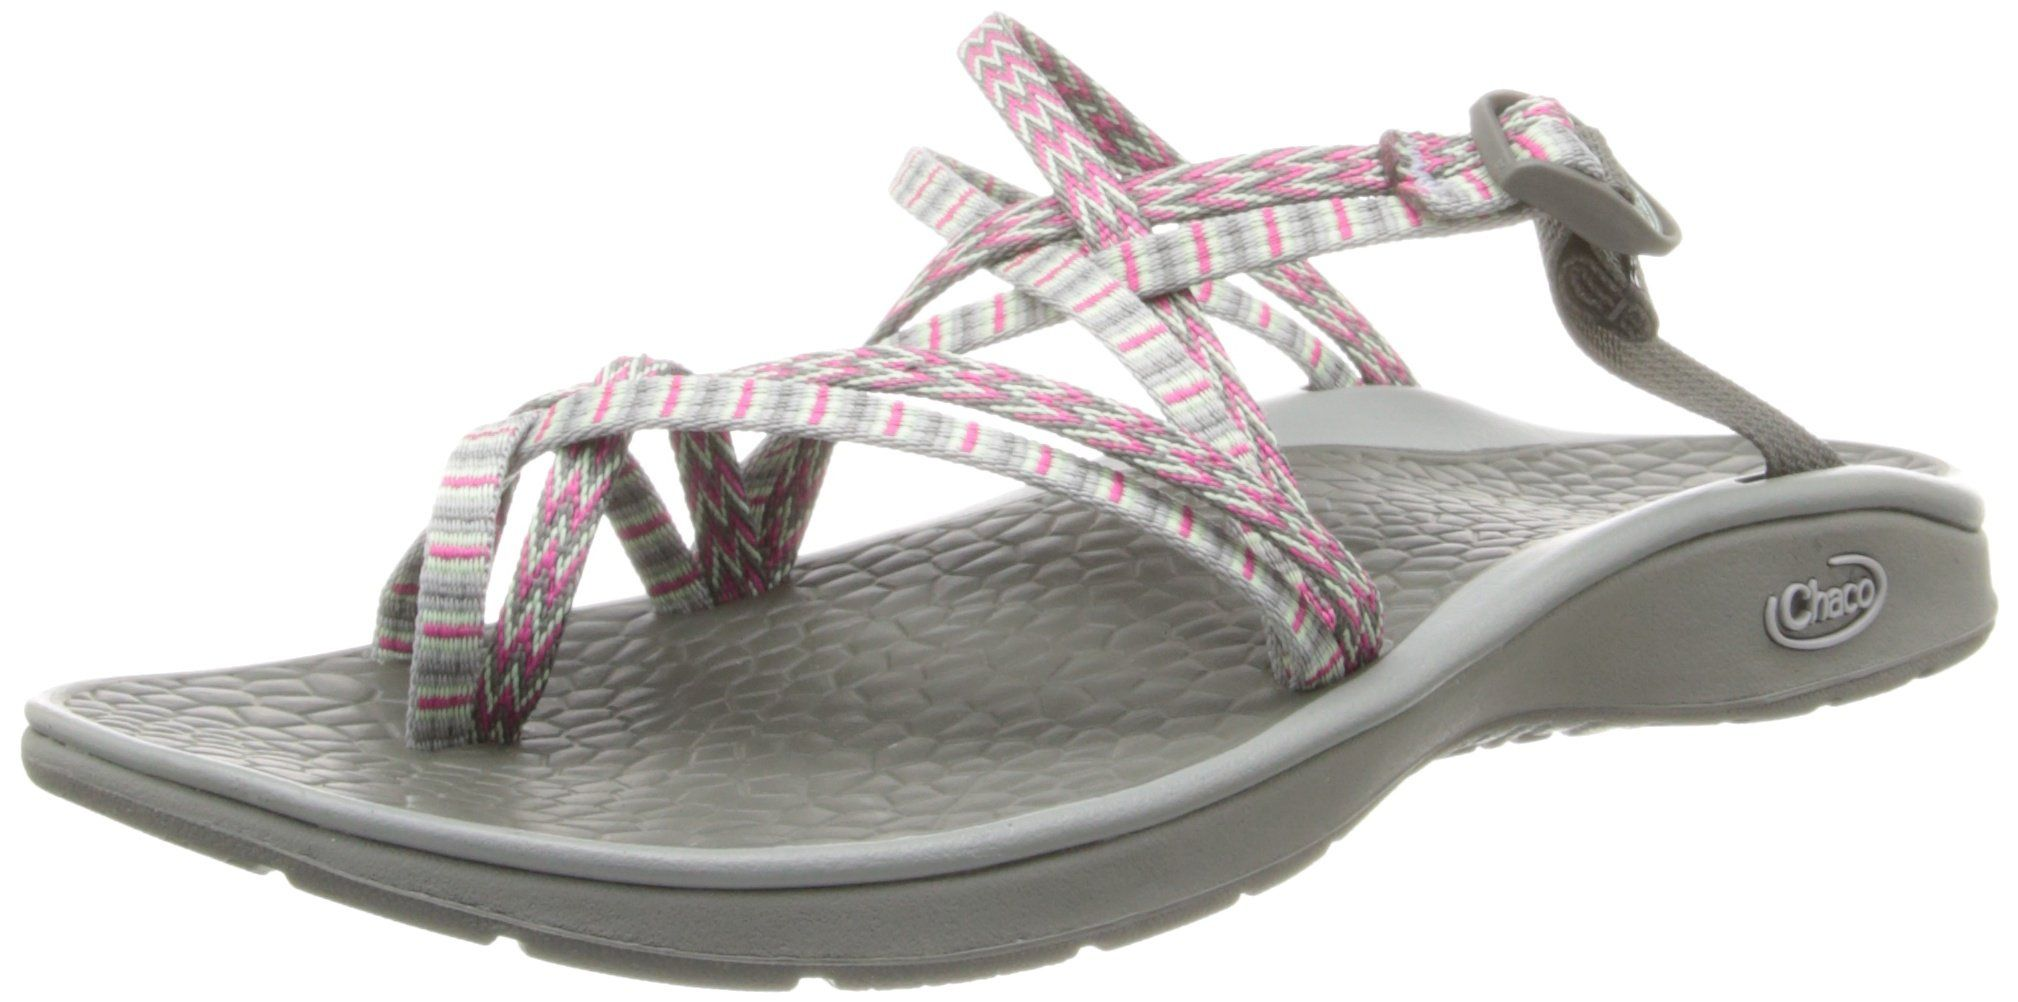 Amazon.com: Chaco Women's Sleet Sandal: Shoes